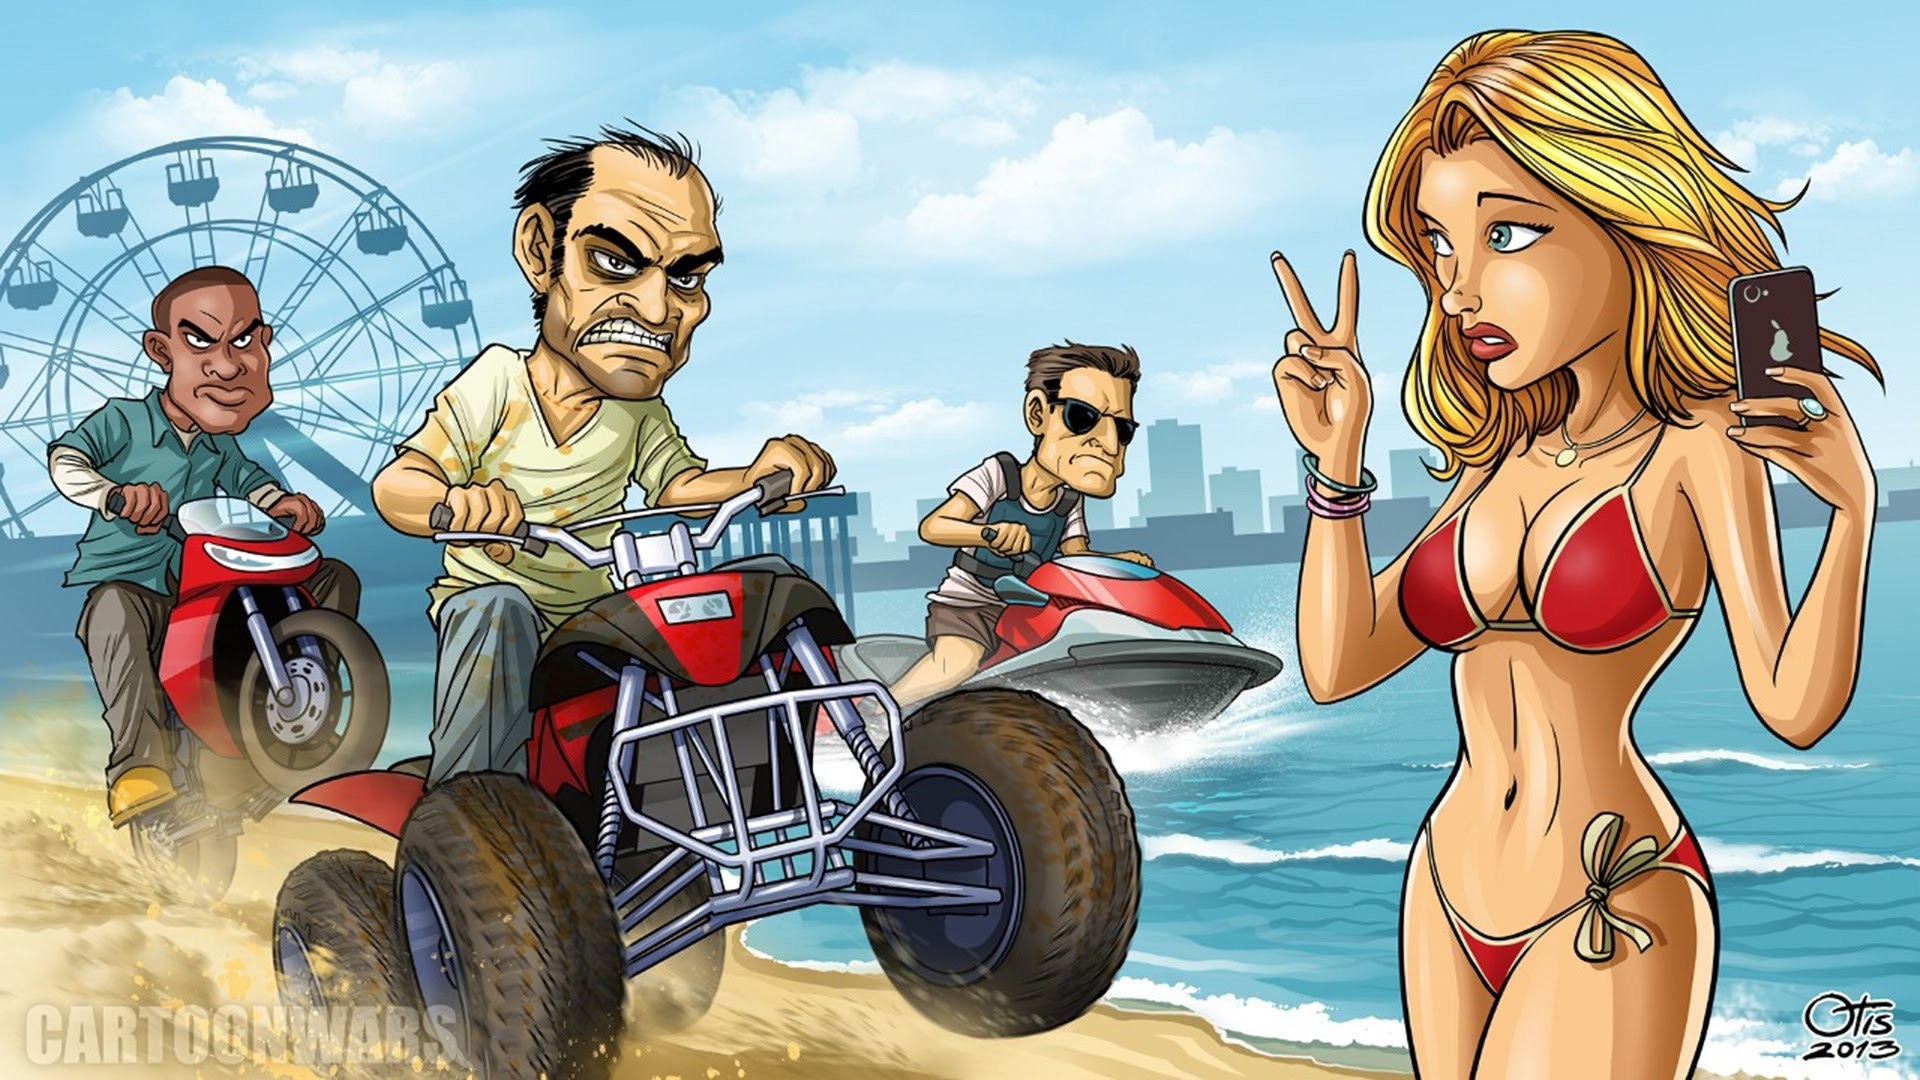 gta v wallpaper 1920x1080 (81+ images)